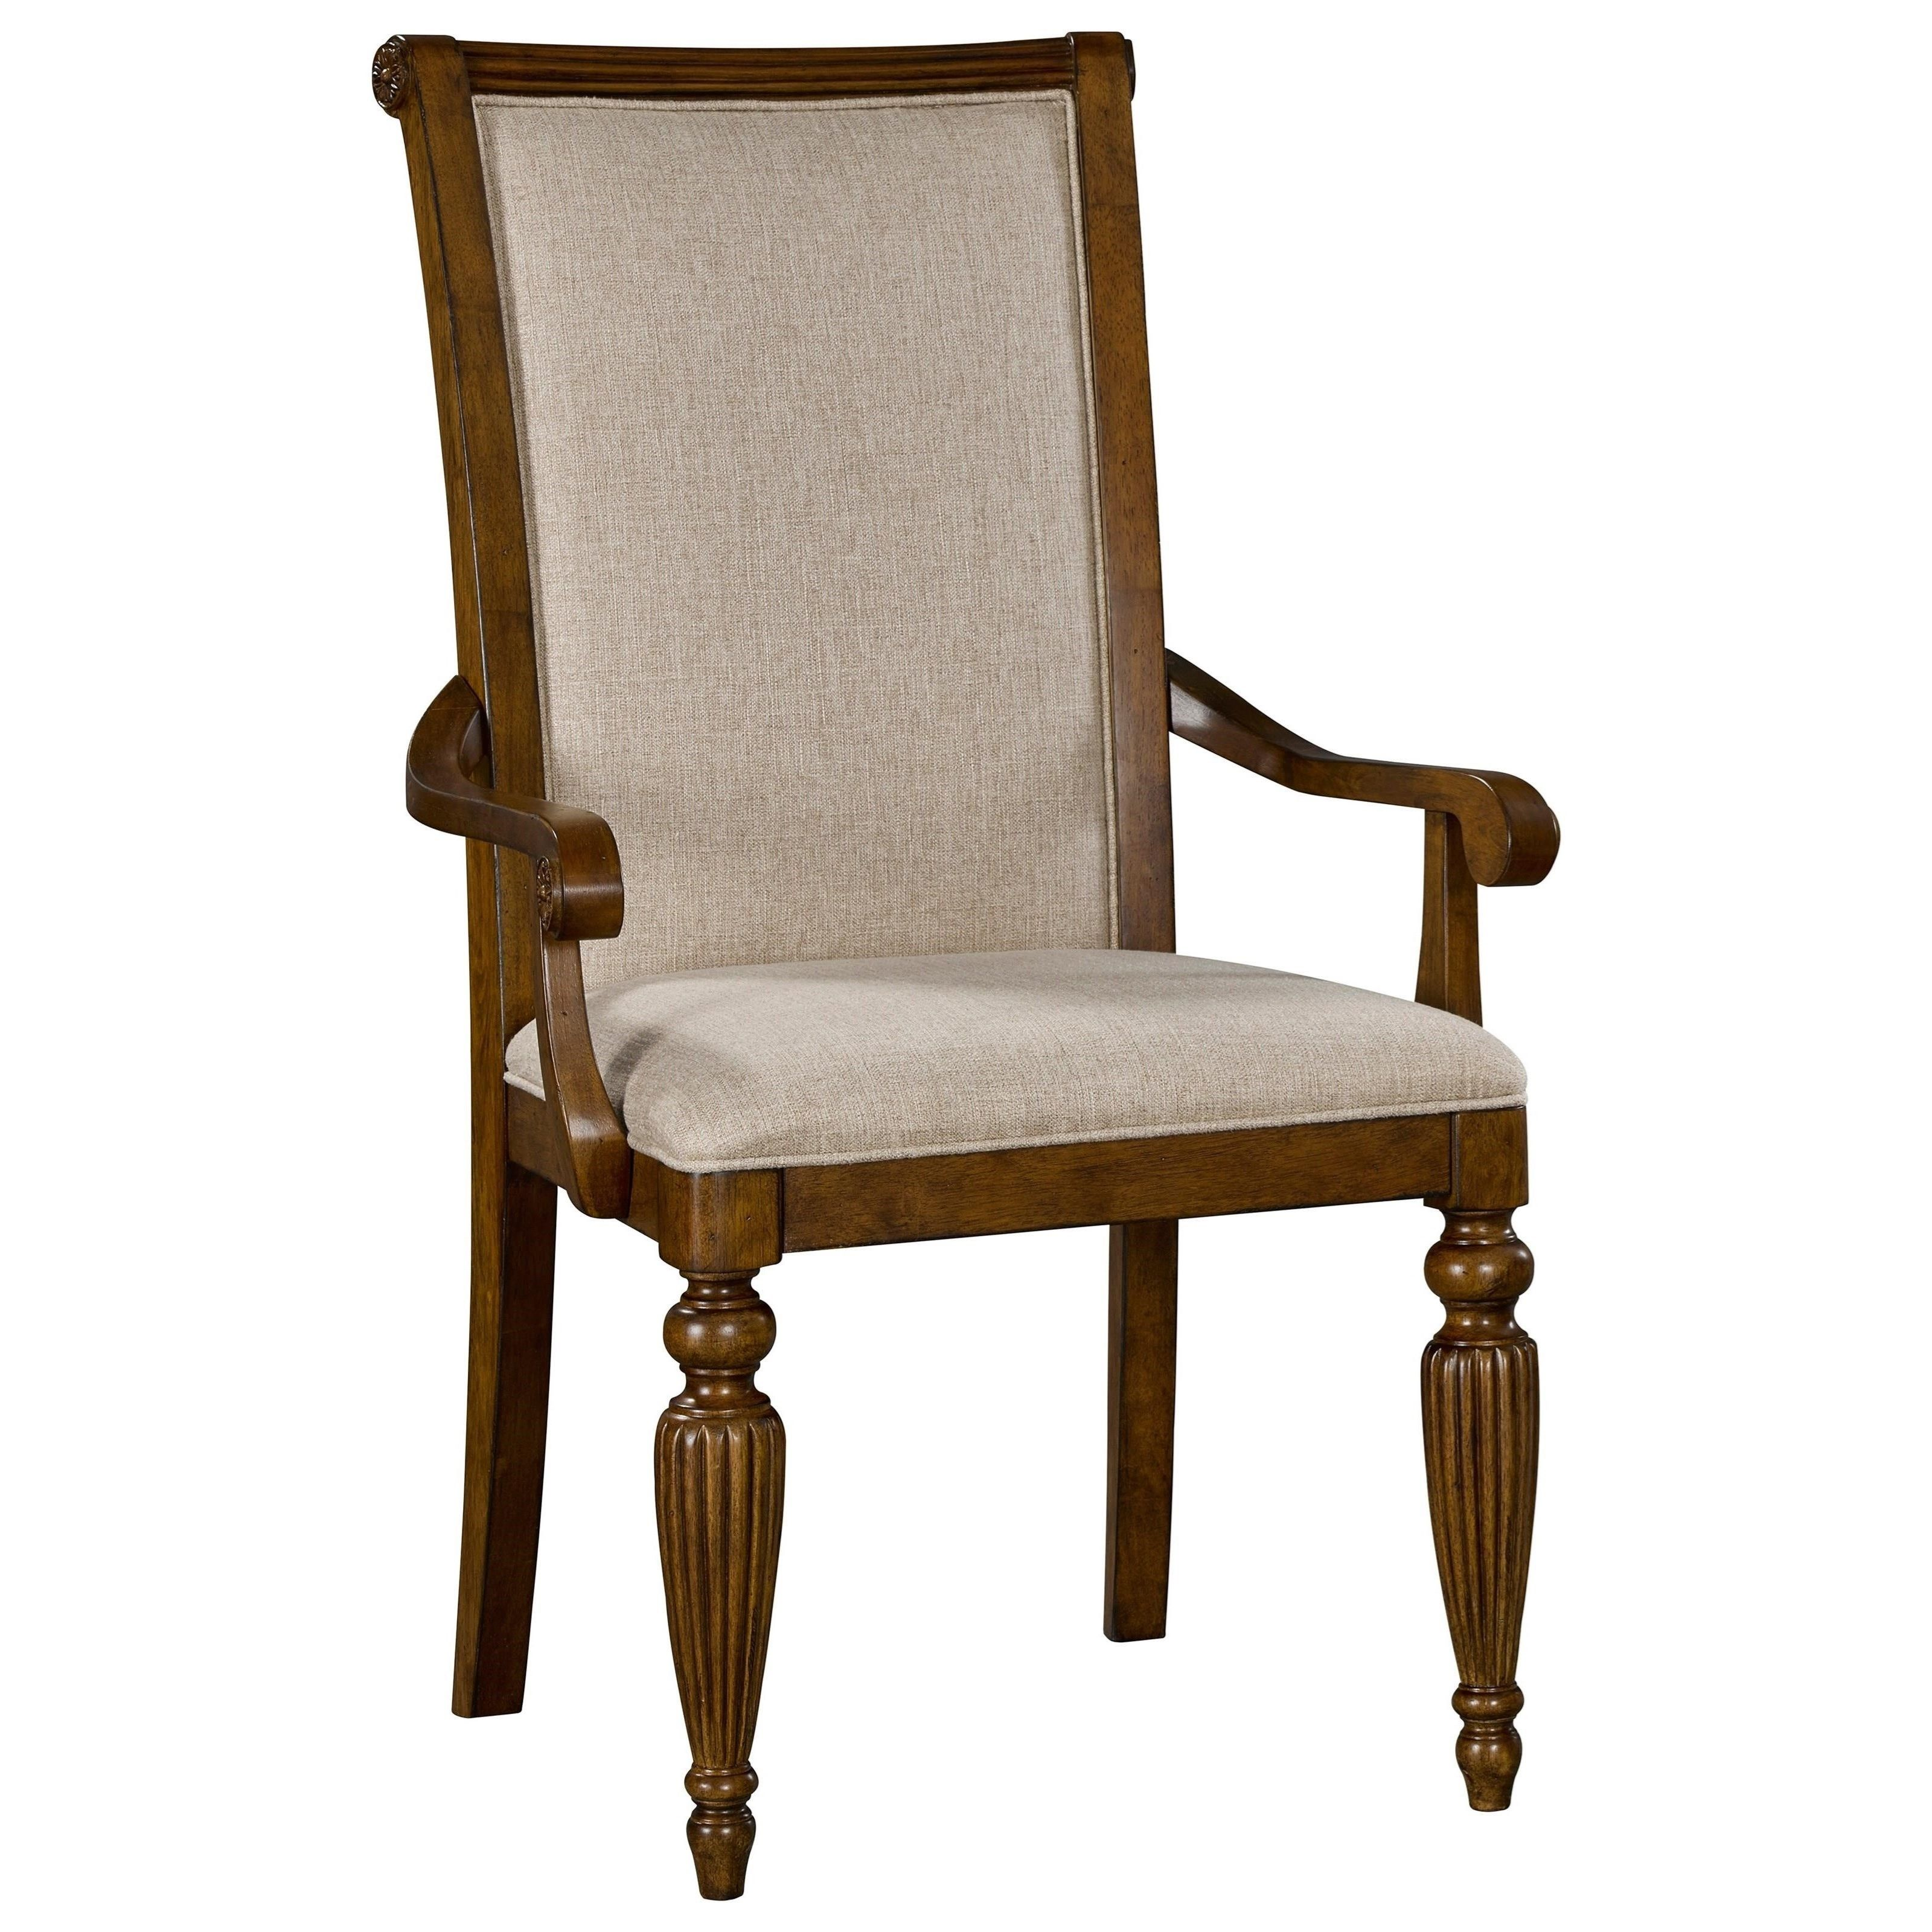 Broyhill Furniture Amalie Bay Upholstered Arm Chair Item